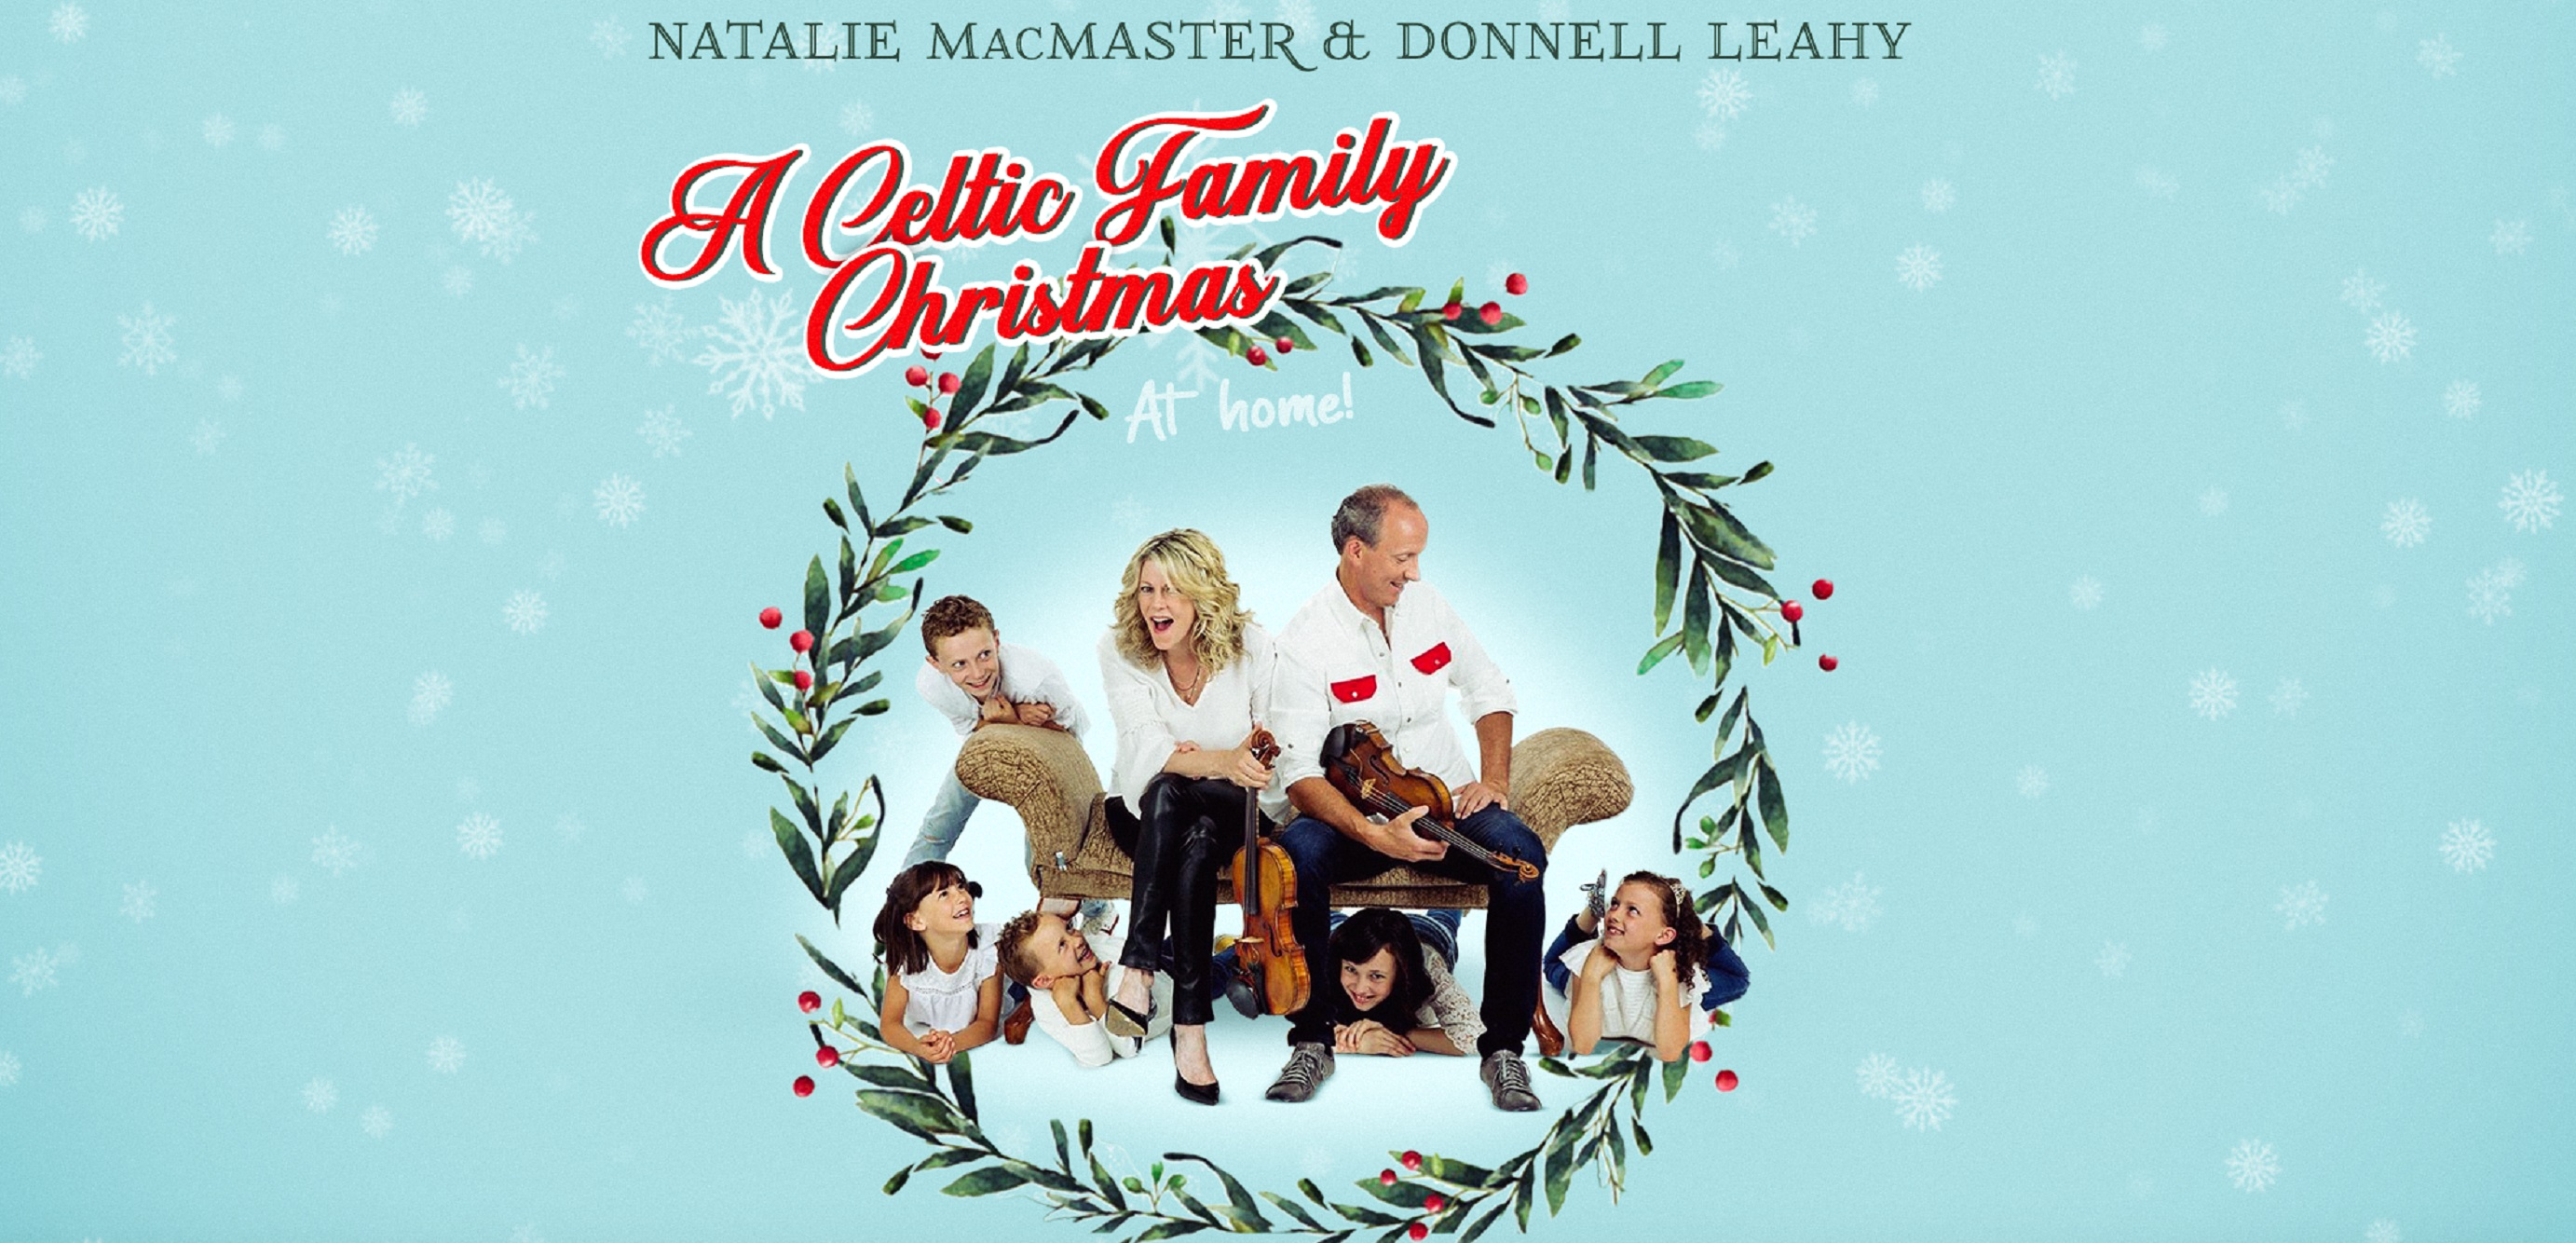 Natalie MacMaster & Donnell Leahy Announce 'A CELTIC FAMILY CHRISTMAS AT HOME' Tour